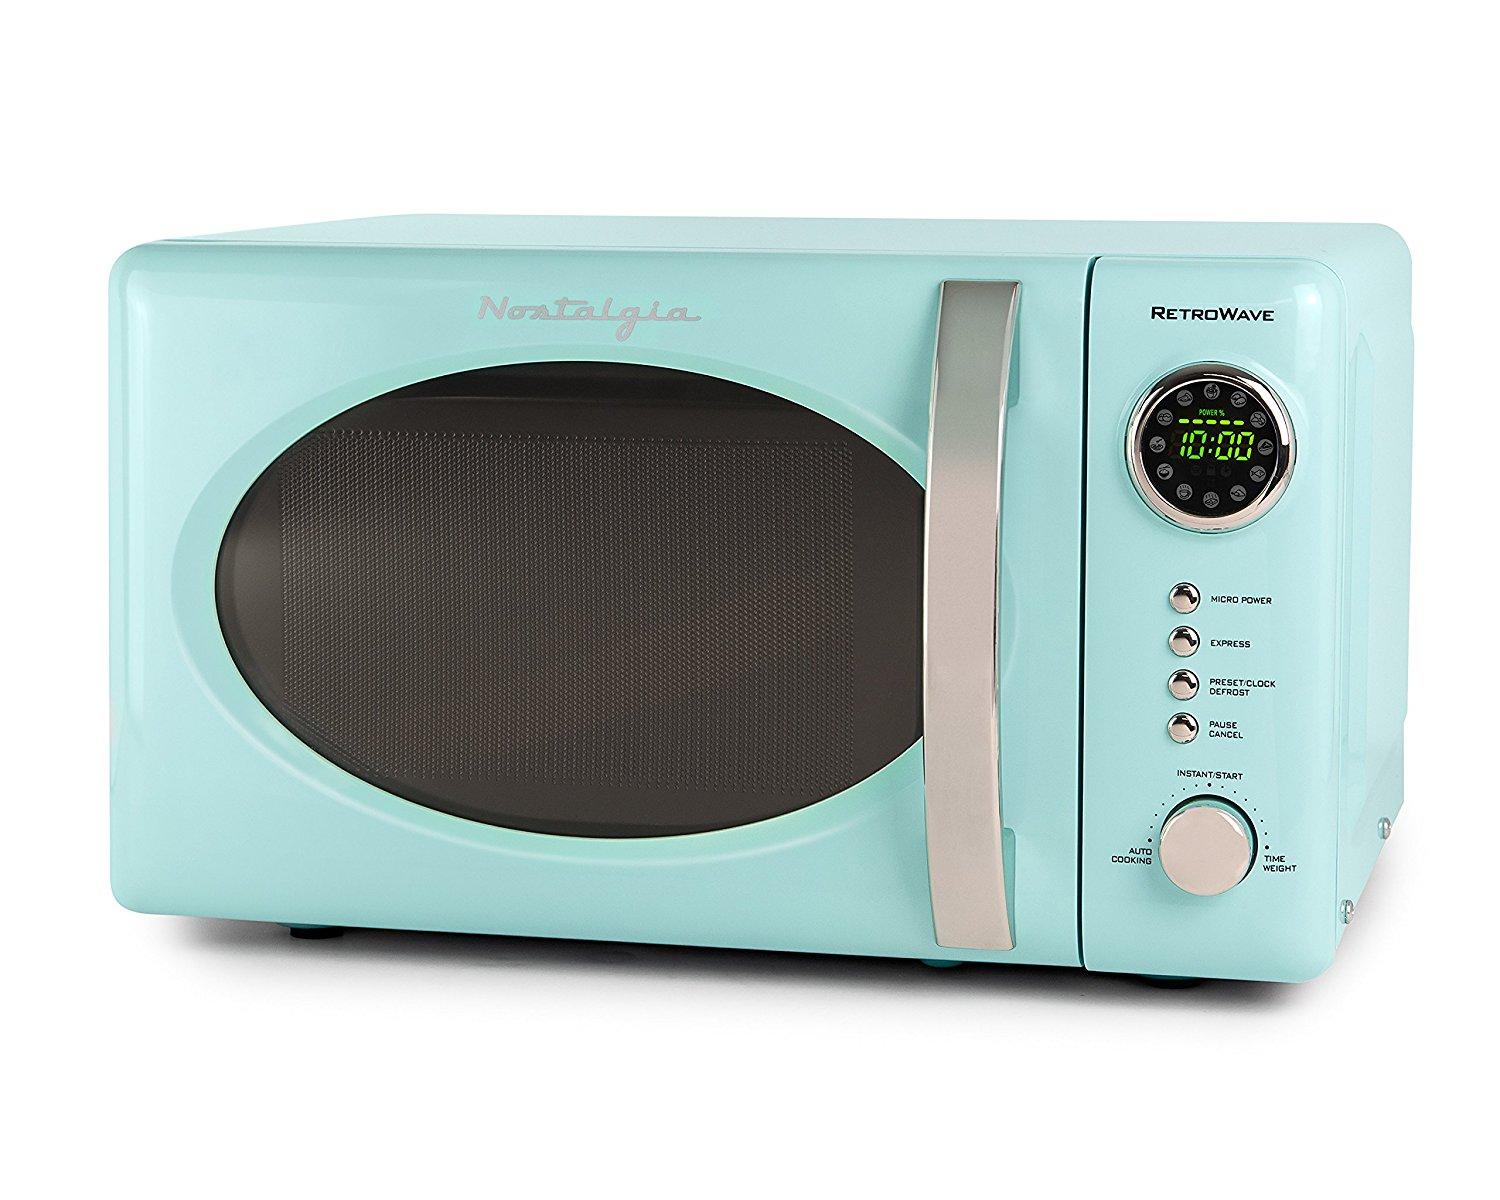 Nostalgia Aqua Blue Retro Microwave Oven Everything